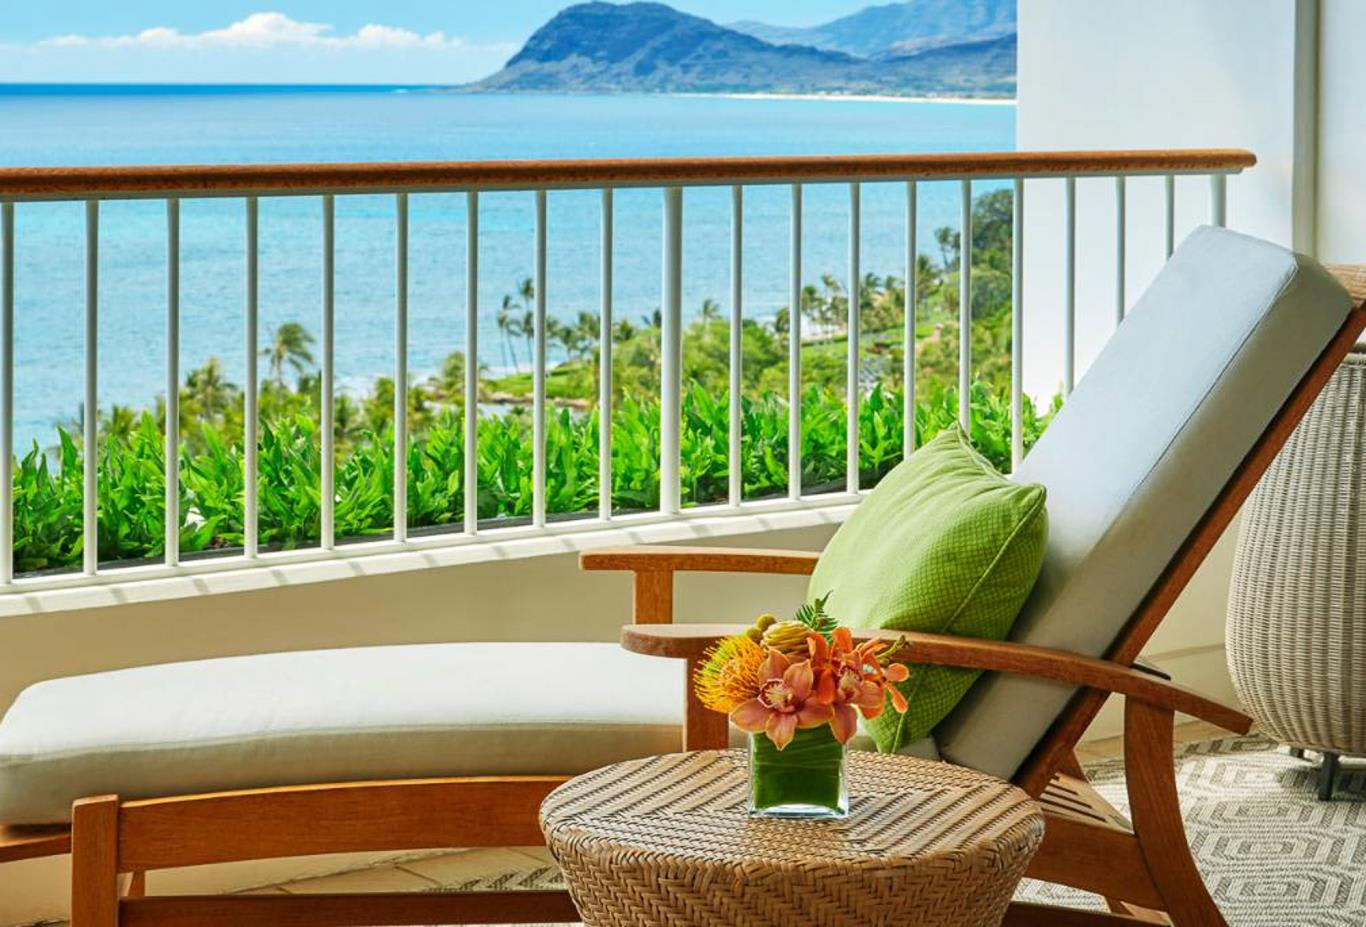 Oceanfront Room or suite balcony